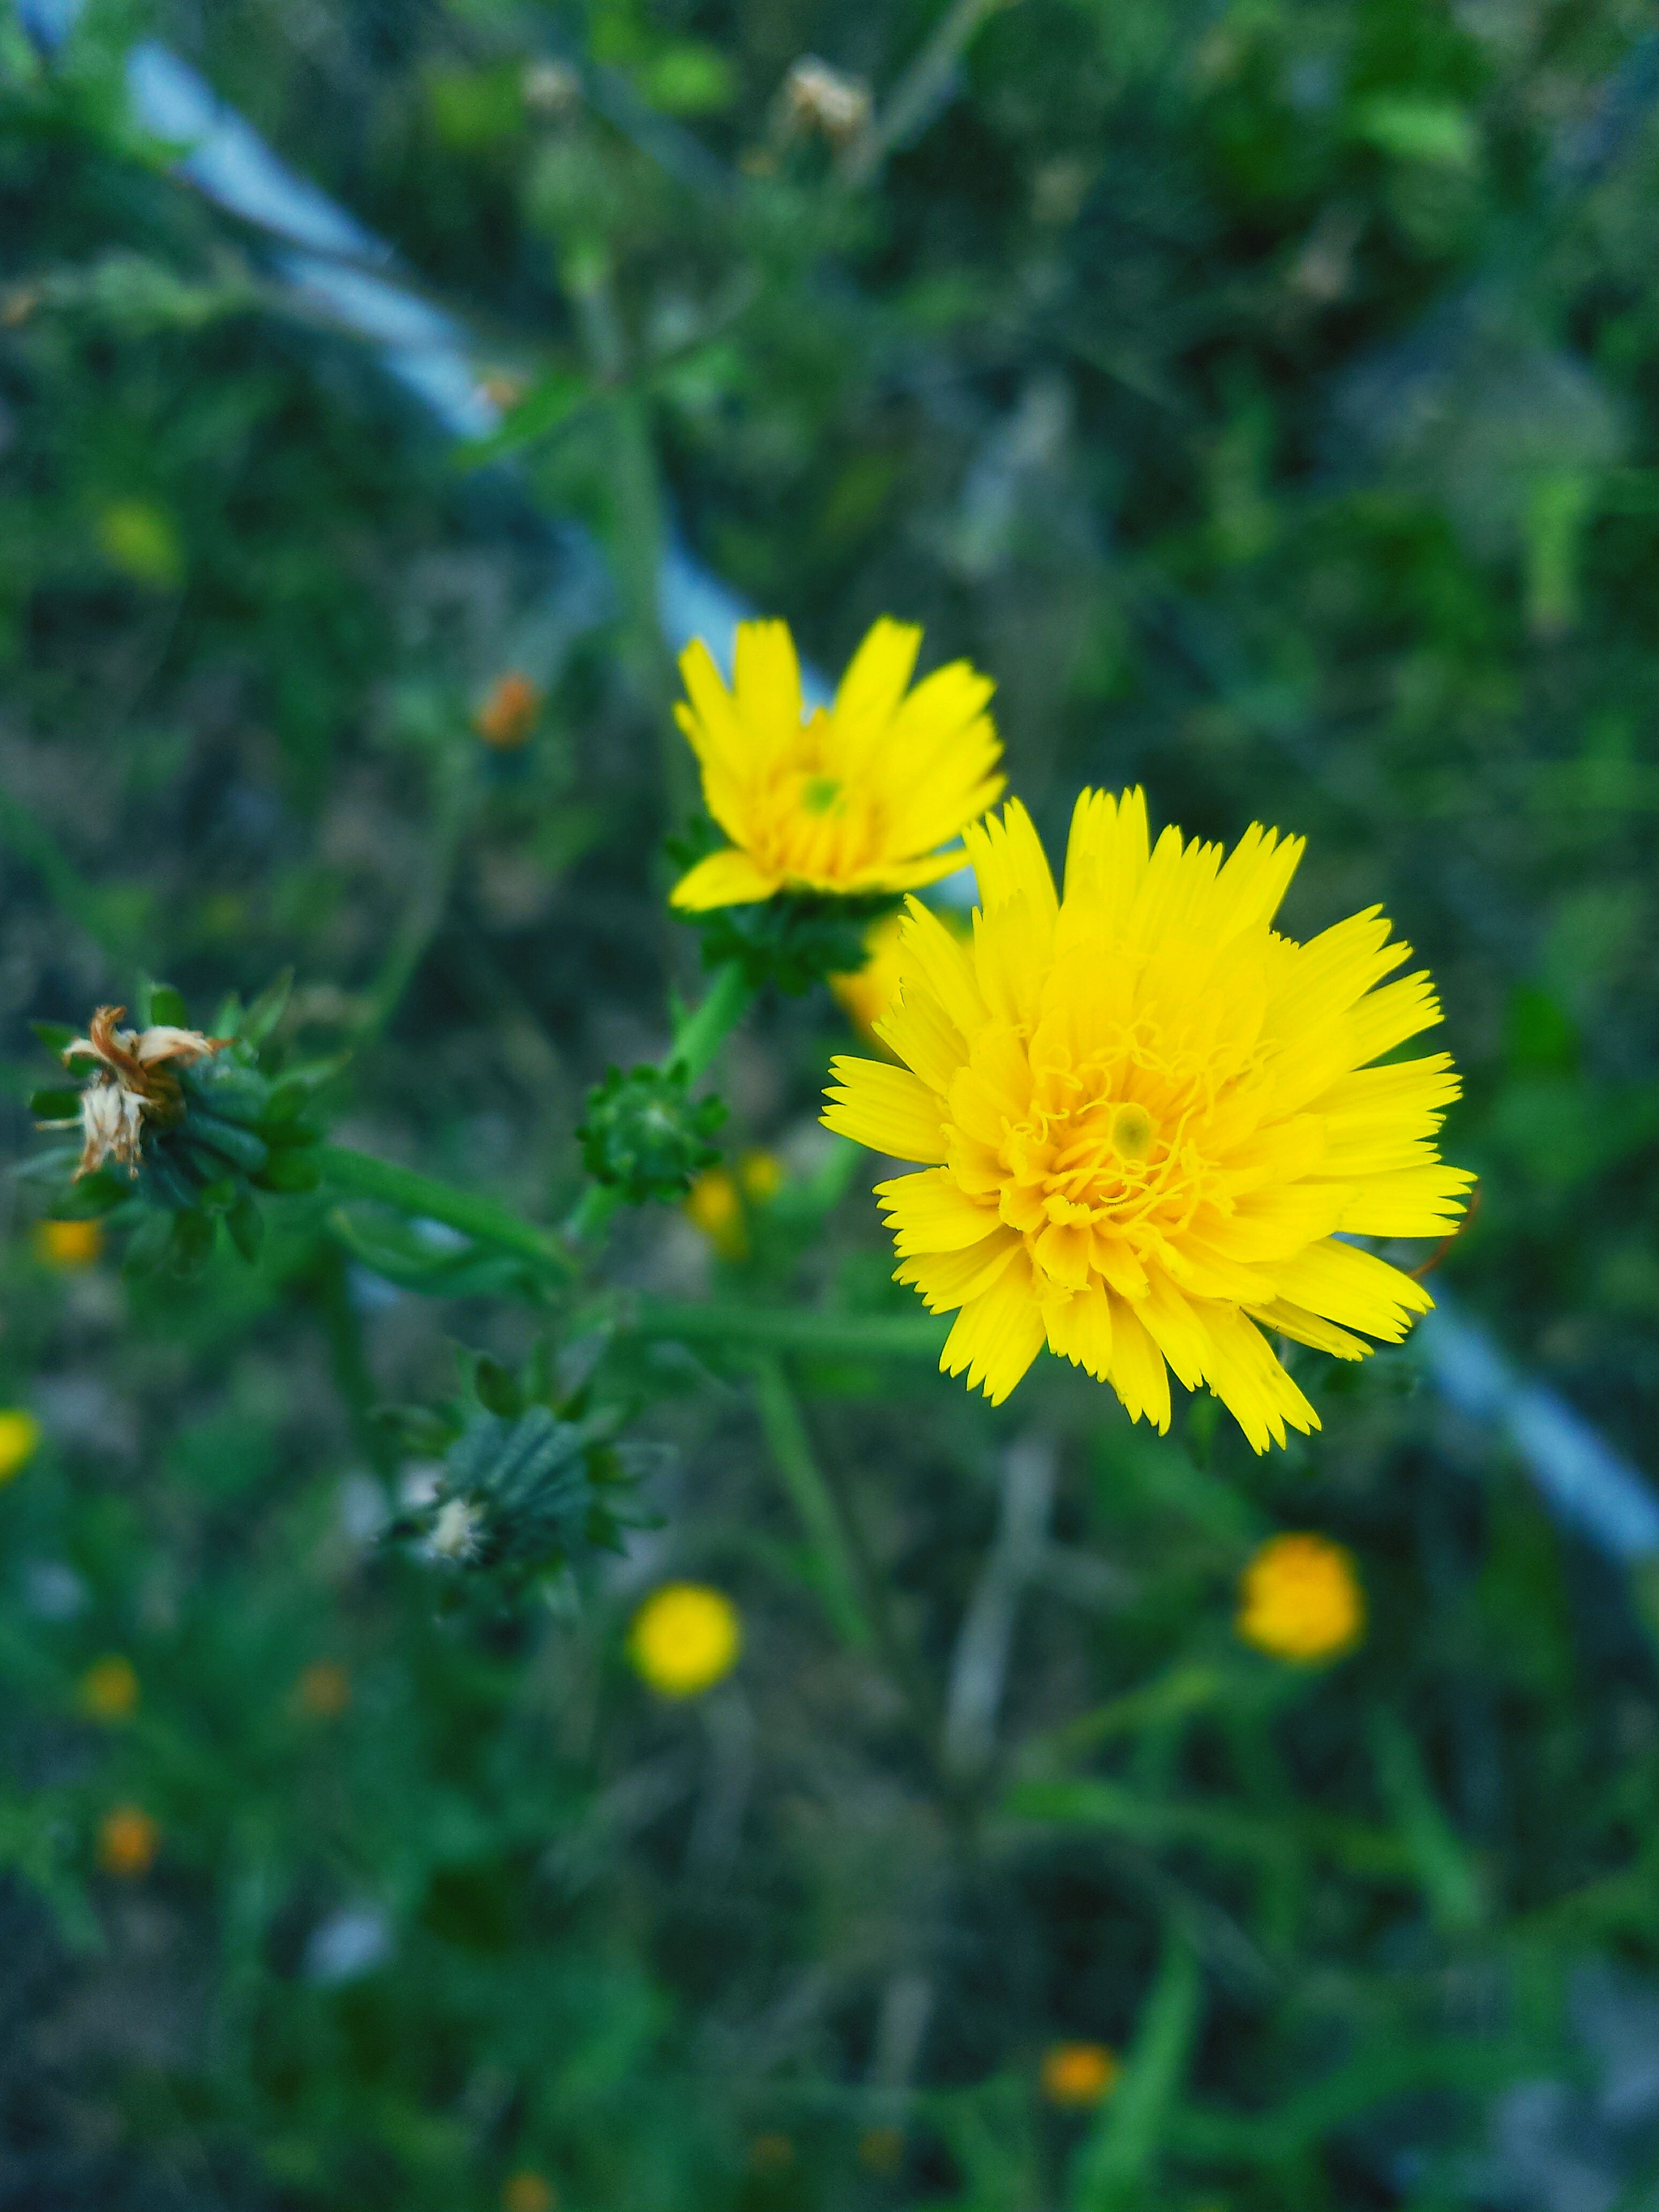 flower, yellow, nature, fragility, petal, beauty in nature, growth, outdoors, plant, flower head, freshness, no people, day, insect, close-up, bee, blooming, animal themes